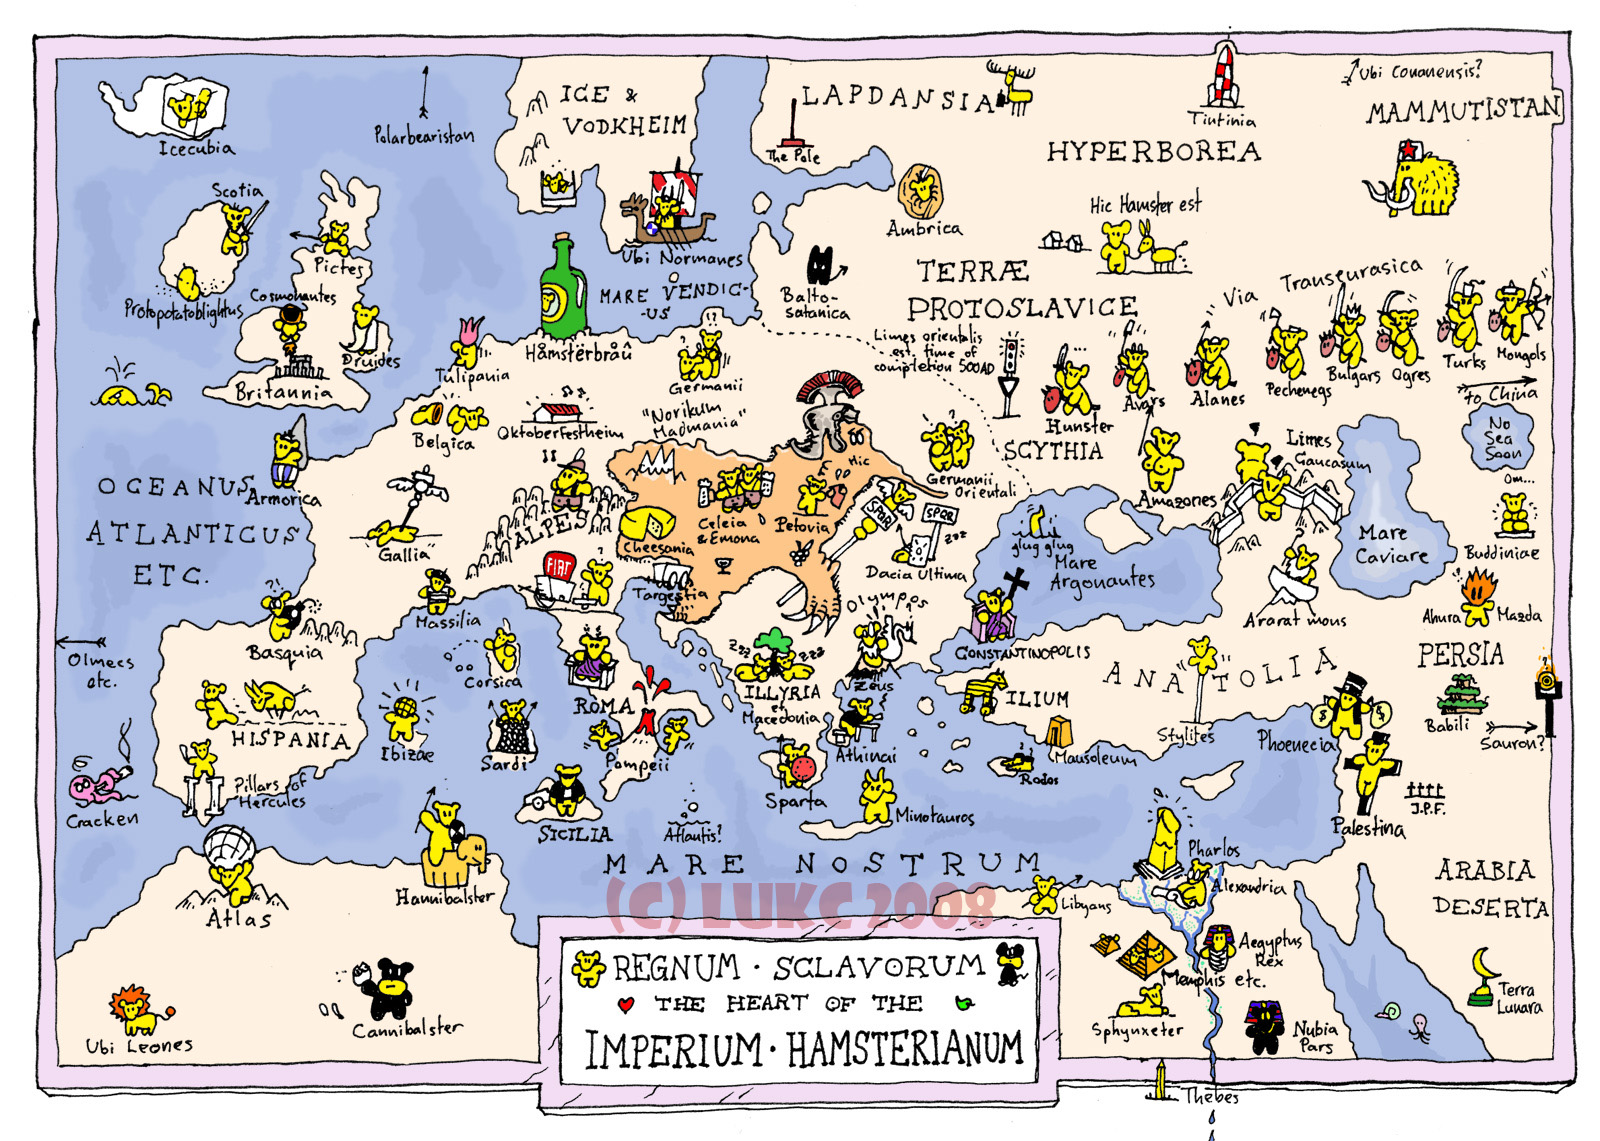 A little joke map featuring little yellow hamsters and such.